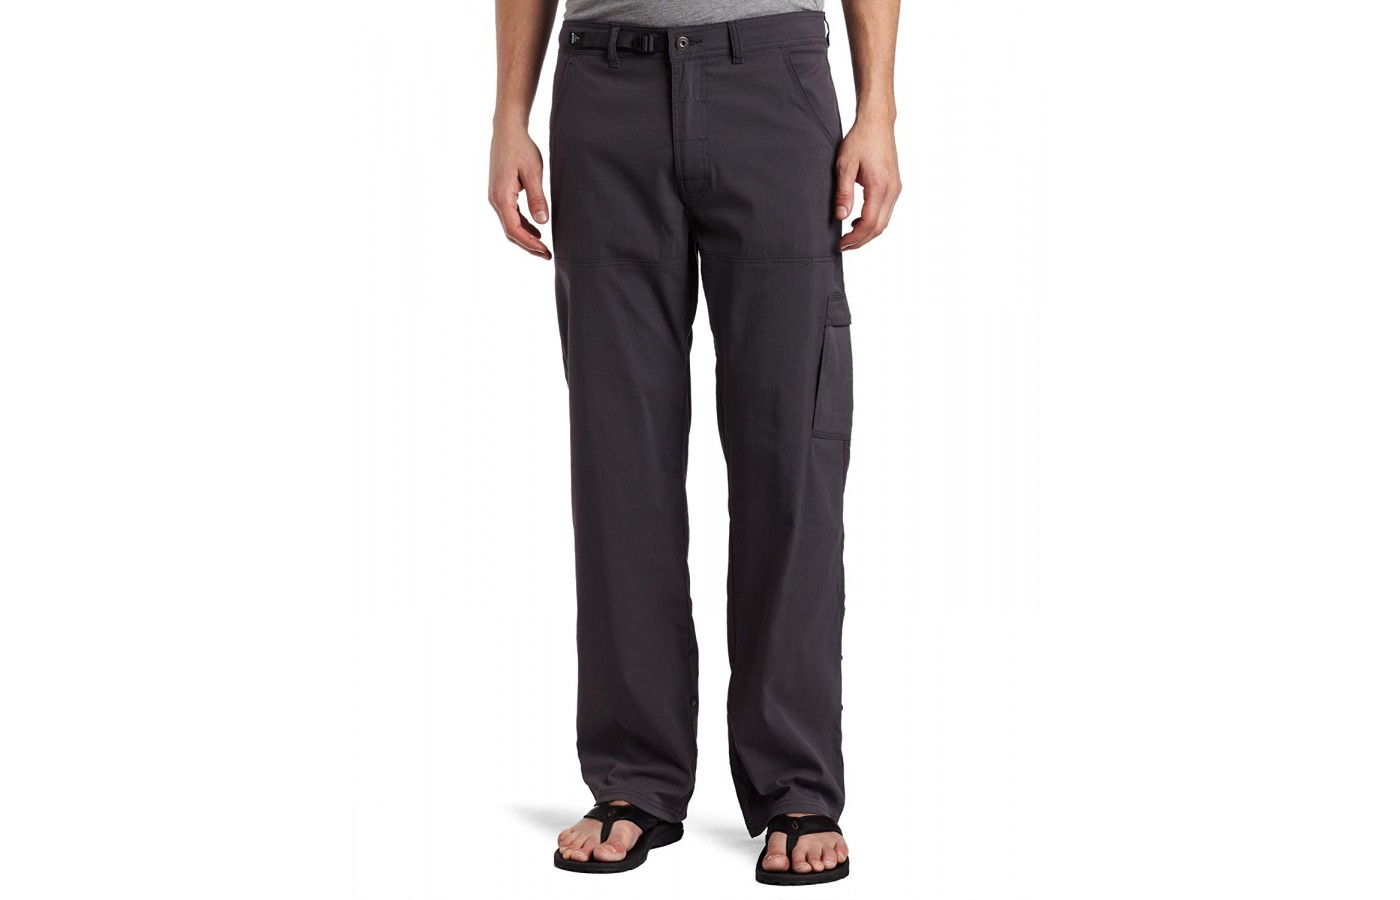 The Prana Stretch Zion offers dual entry cargo pockets for storage.